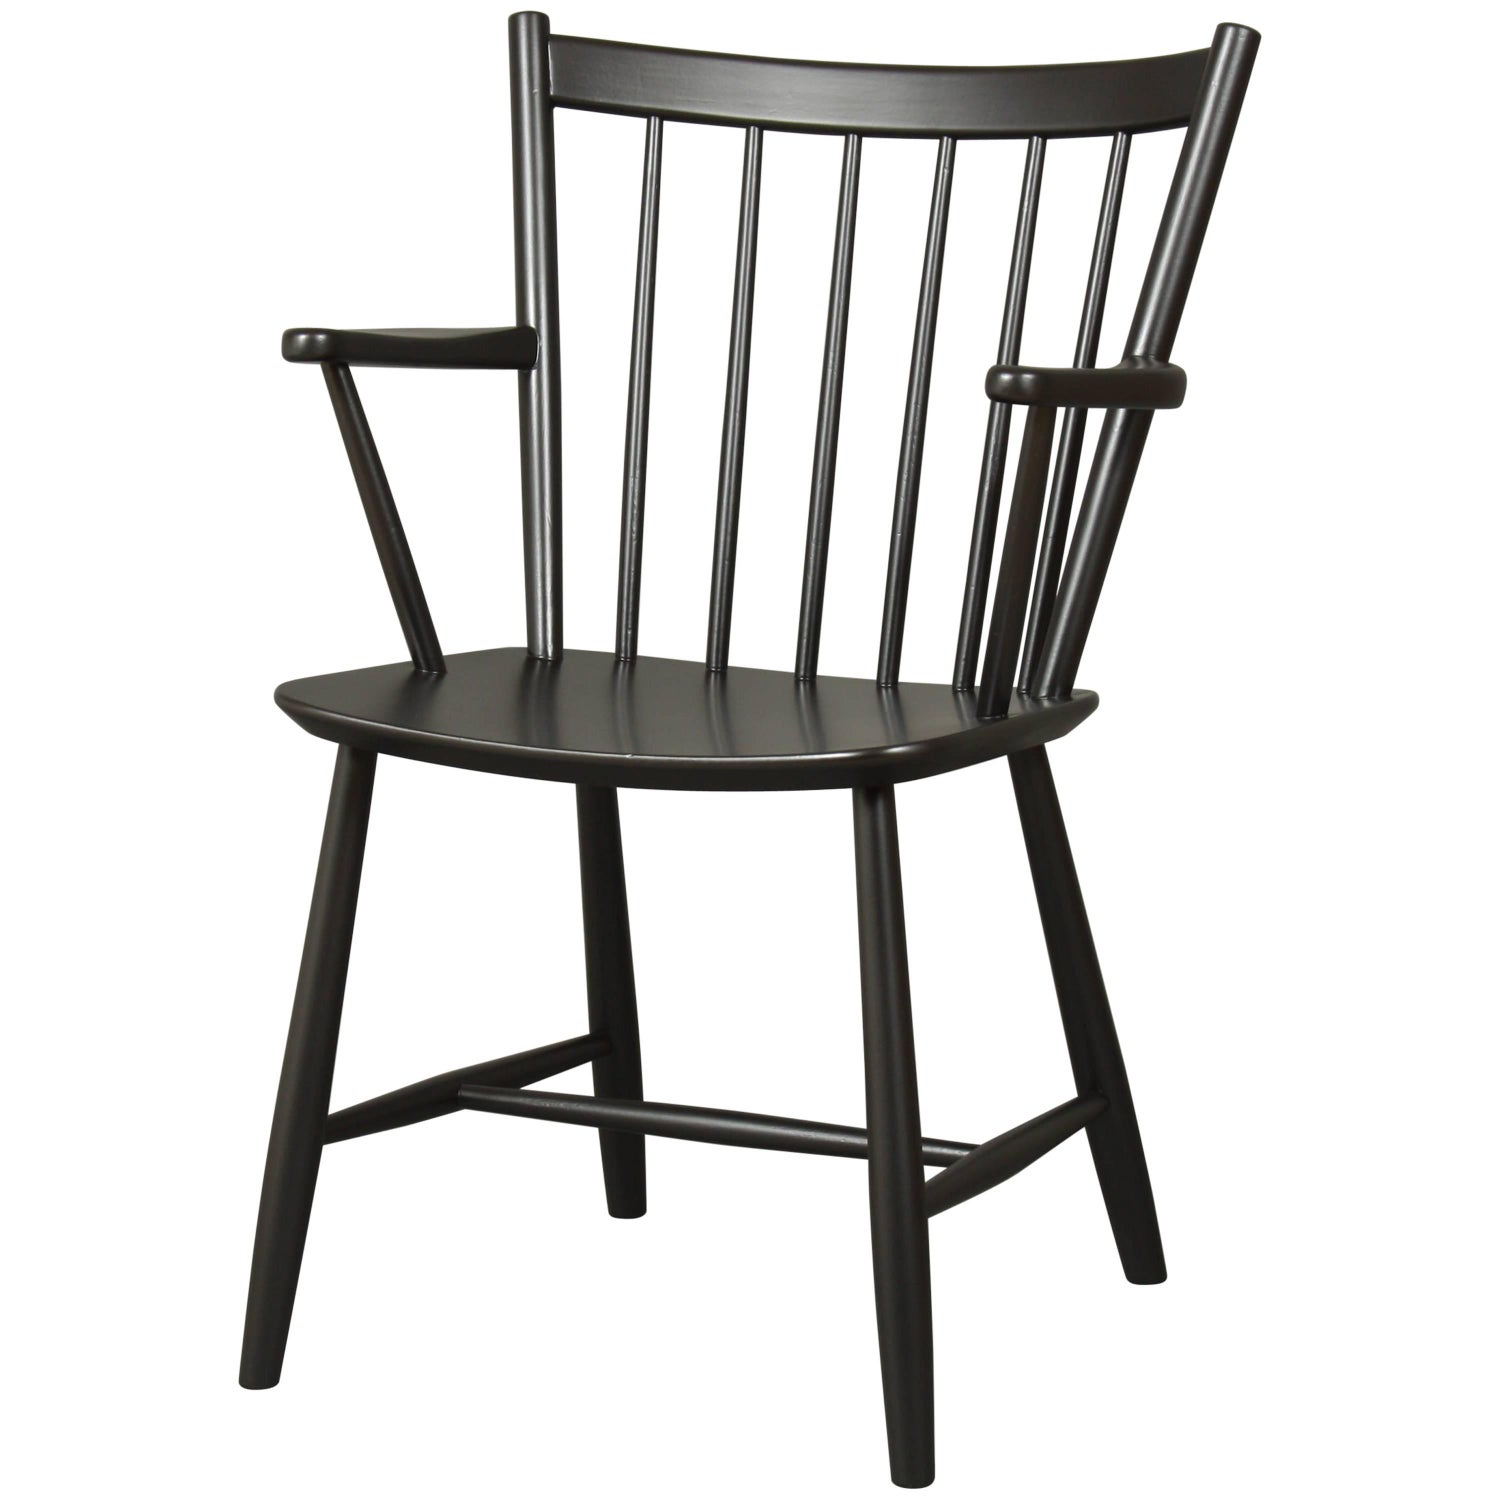 B¸rge Mogensen Dining Chair Model J42 For Sale at 1stdibs